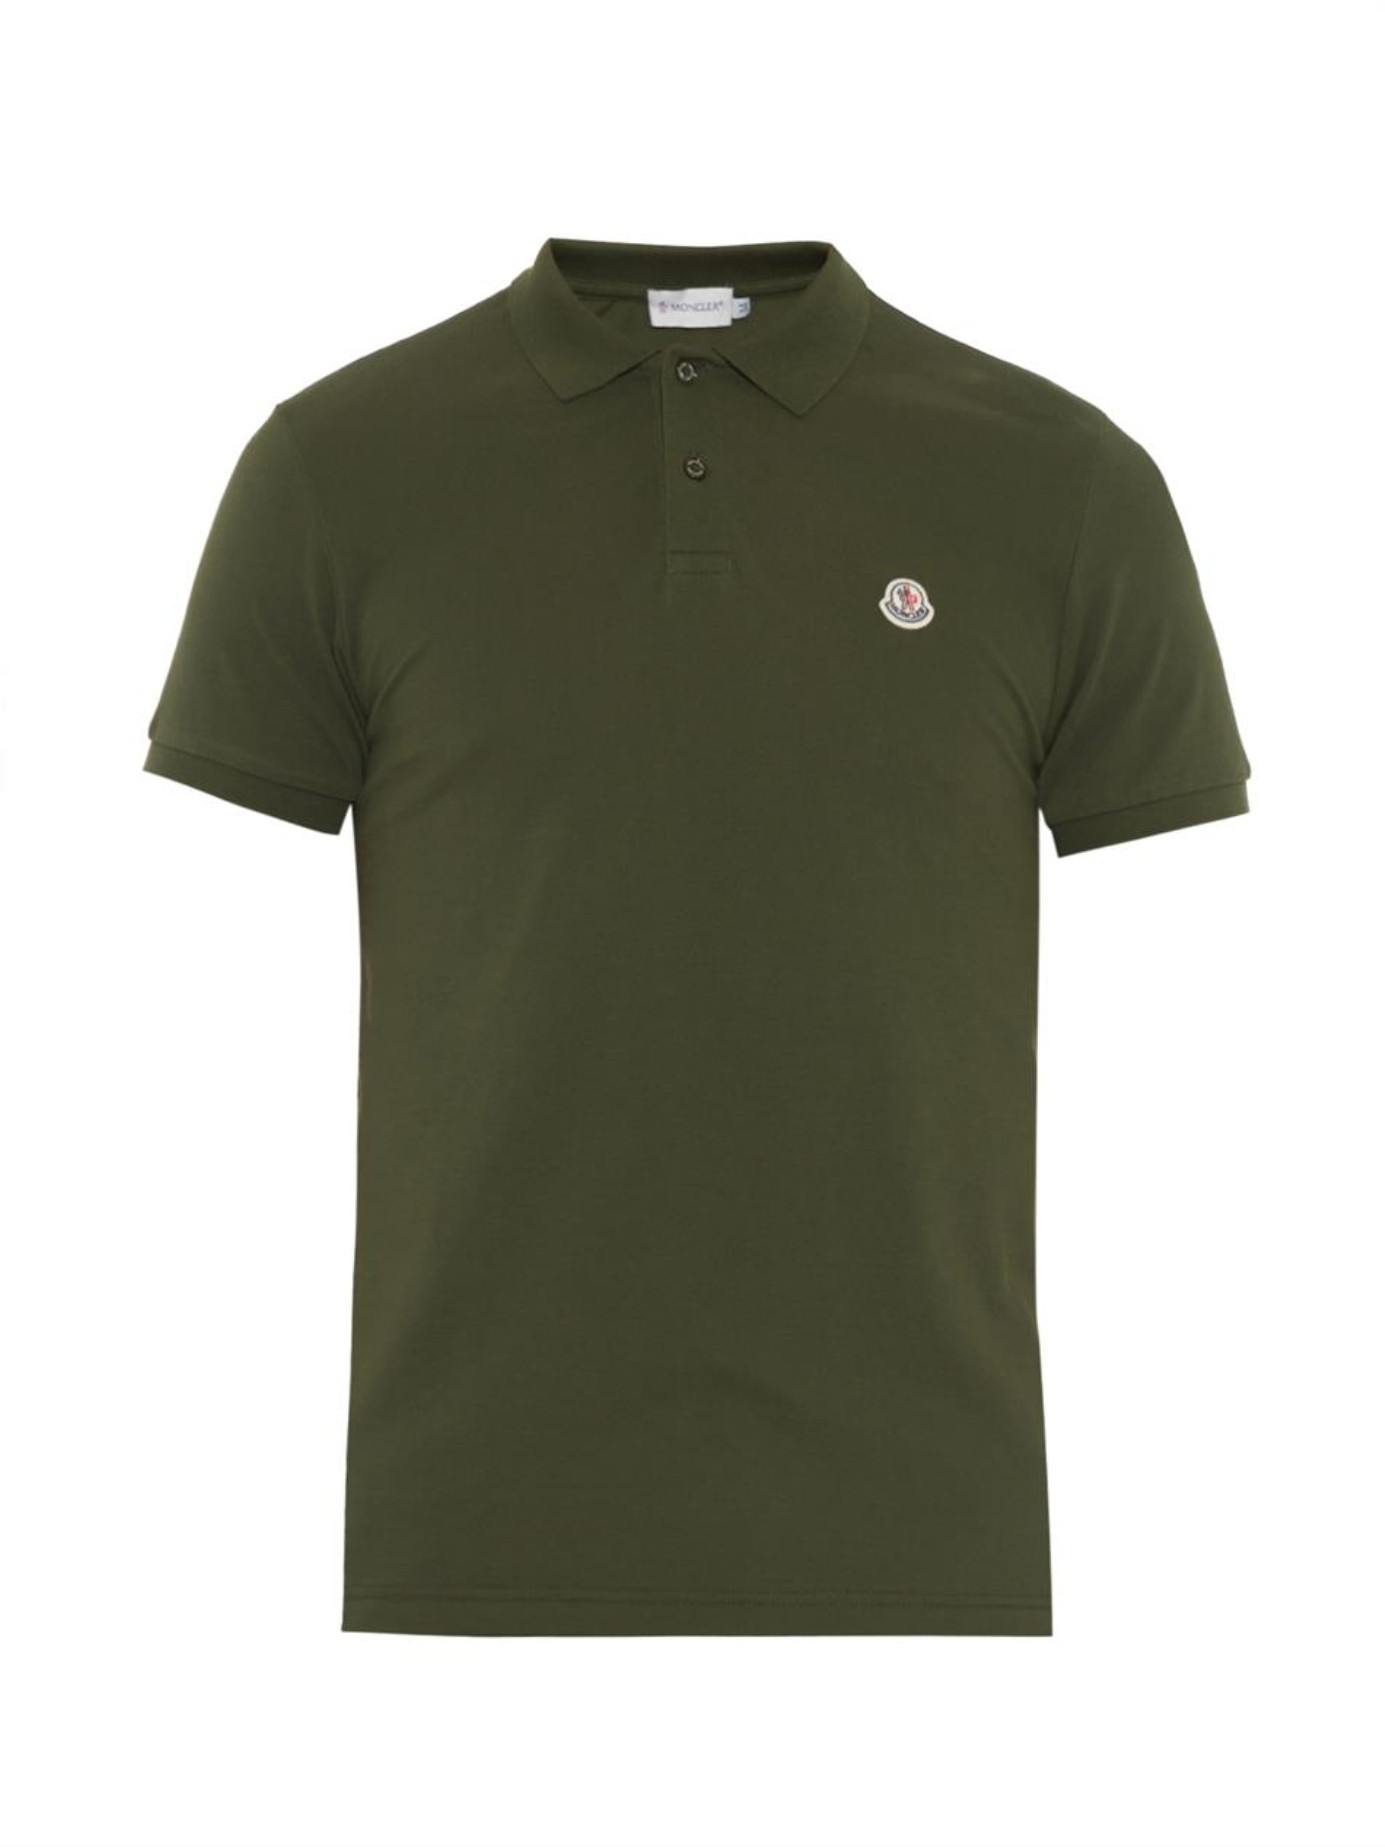 lyst moncler cotton piqu polo shirt in green for men. Black Bedroom Furniture Sets. Home Design Ideas